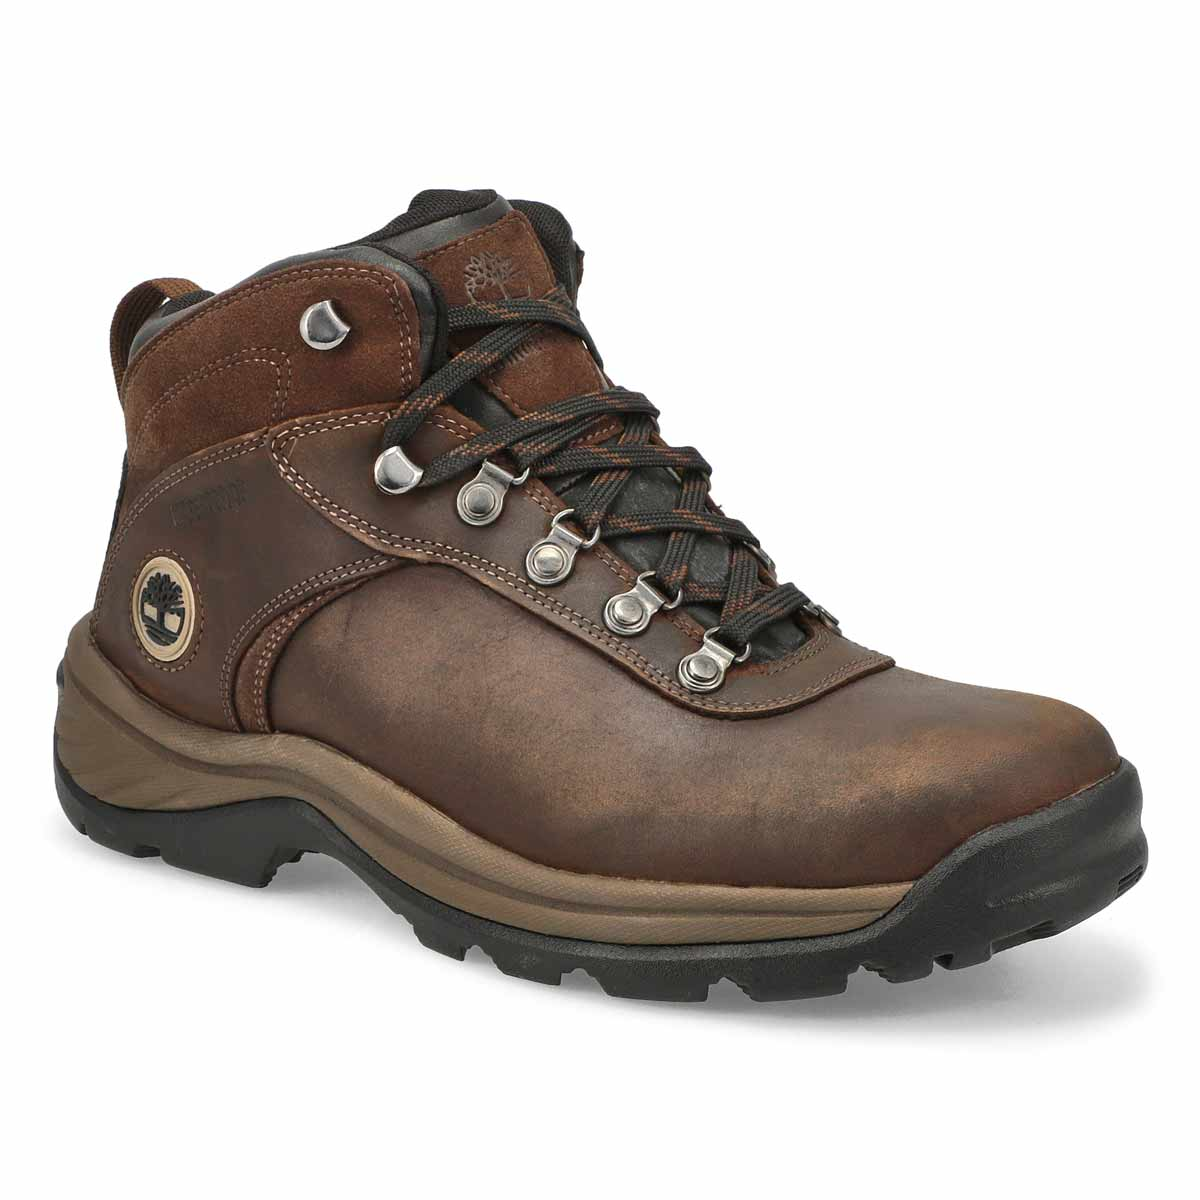 Men's FLUME MID brn waterproof lace up ankle boots